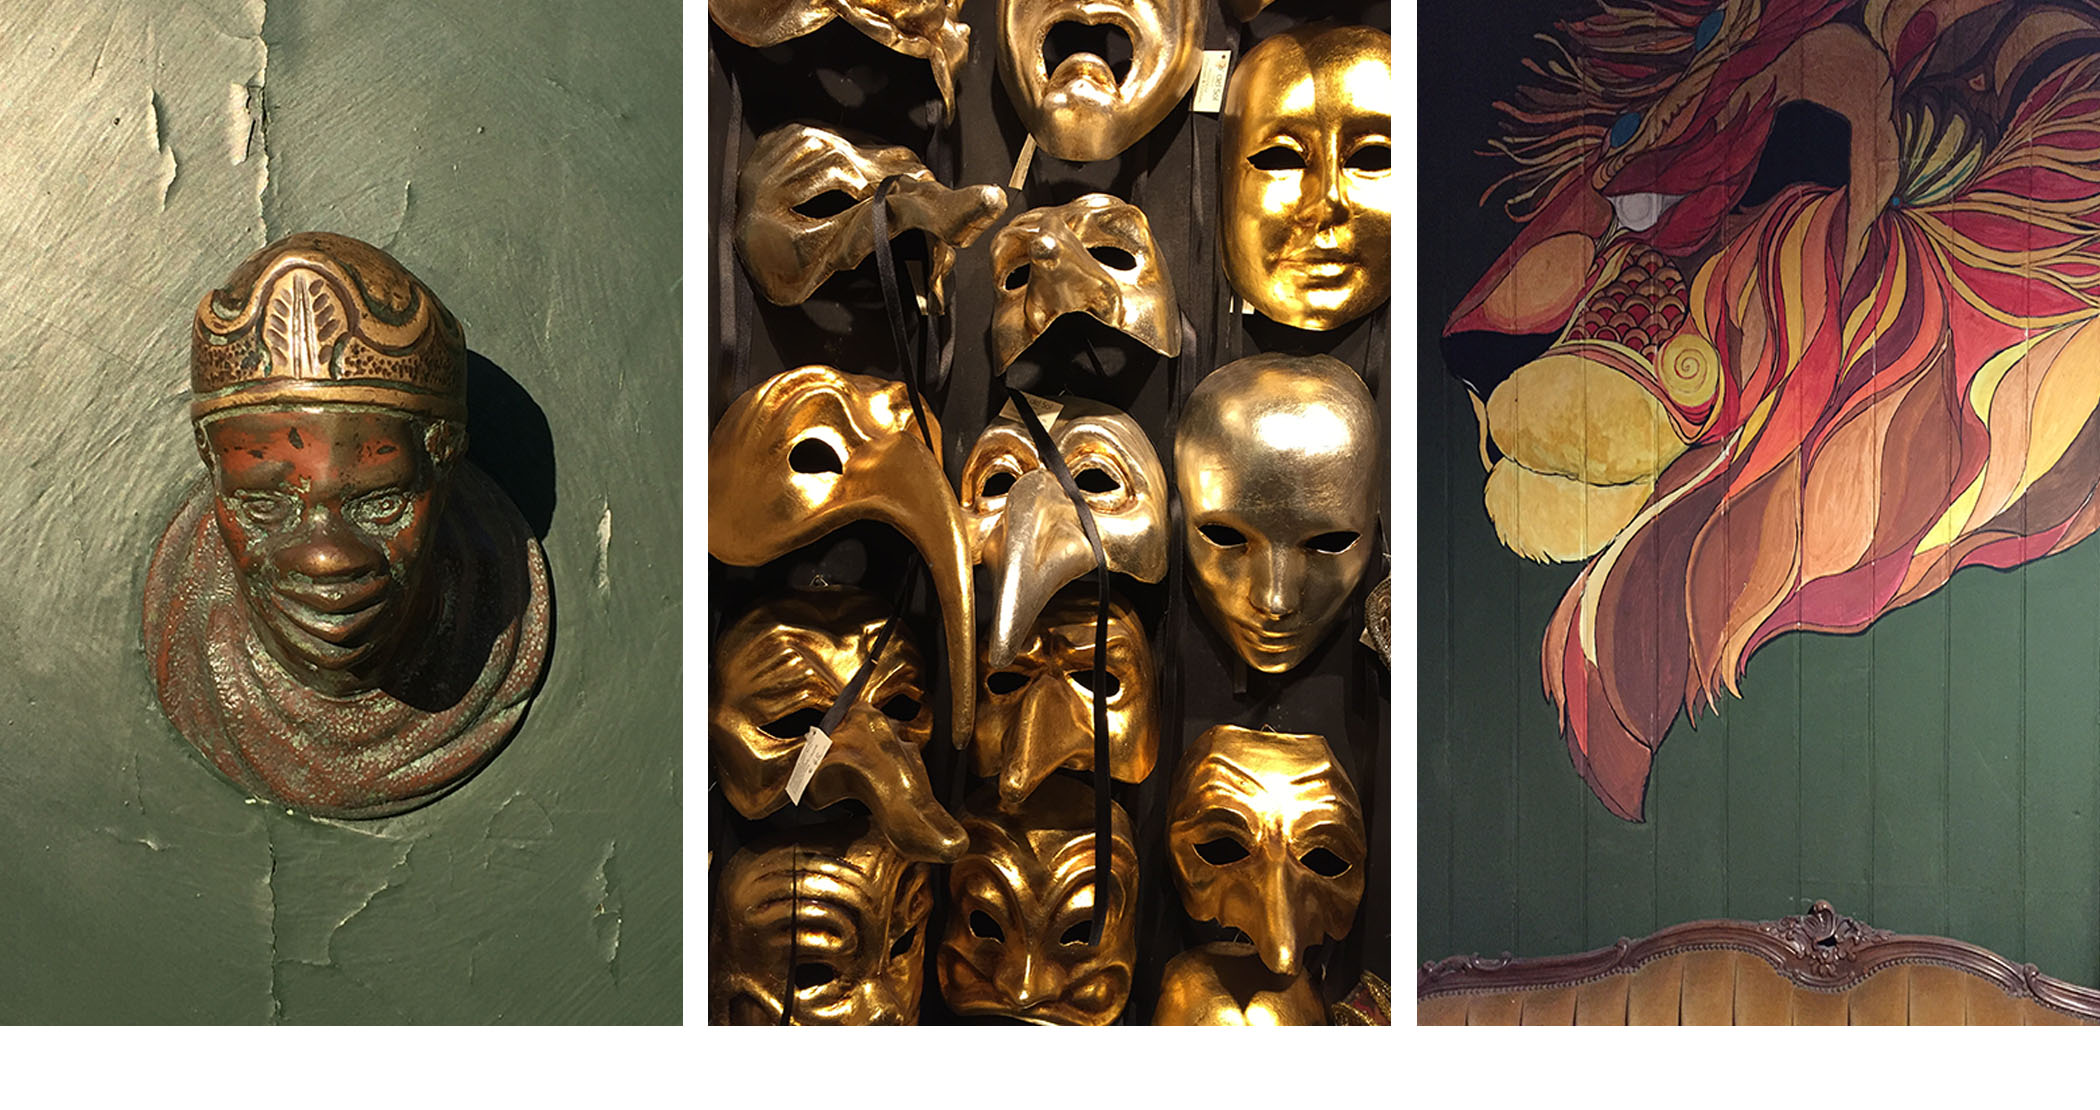 Venetian masks and a memory of the Morish past